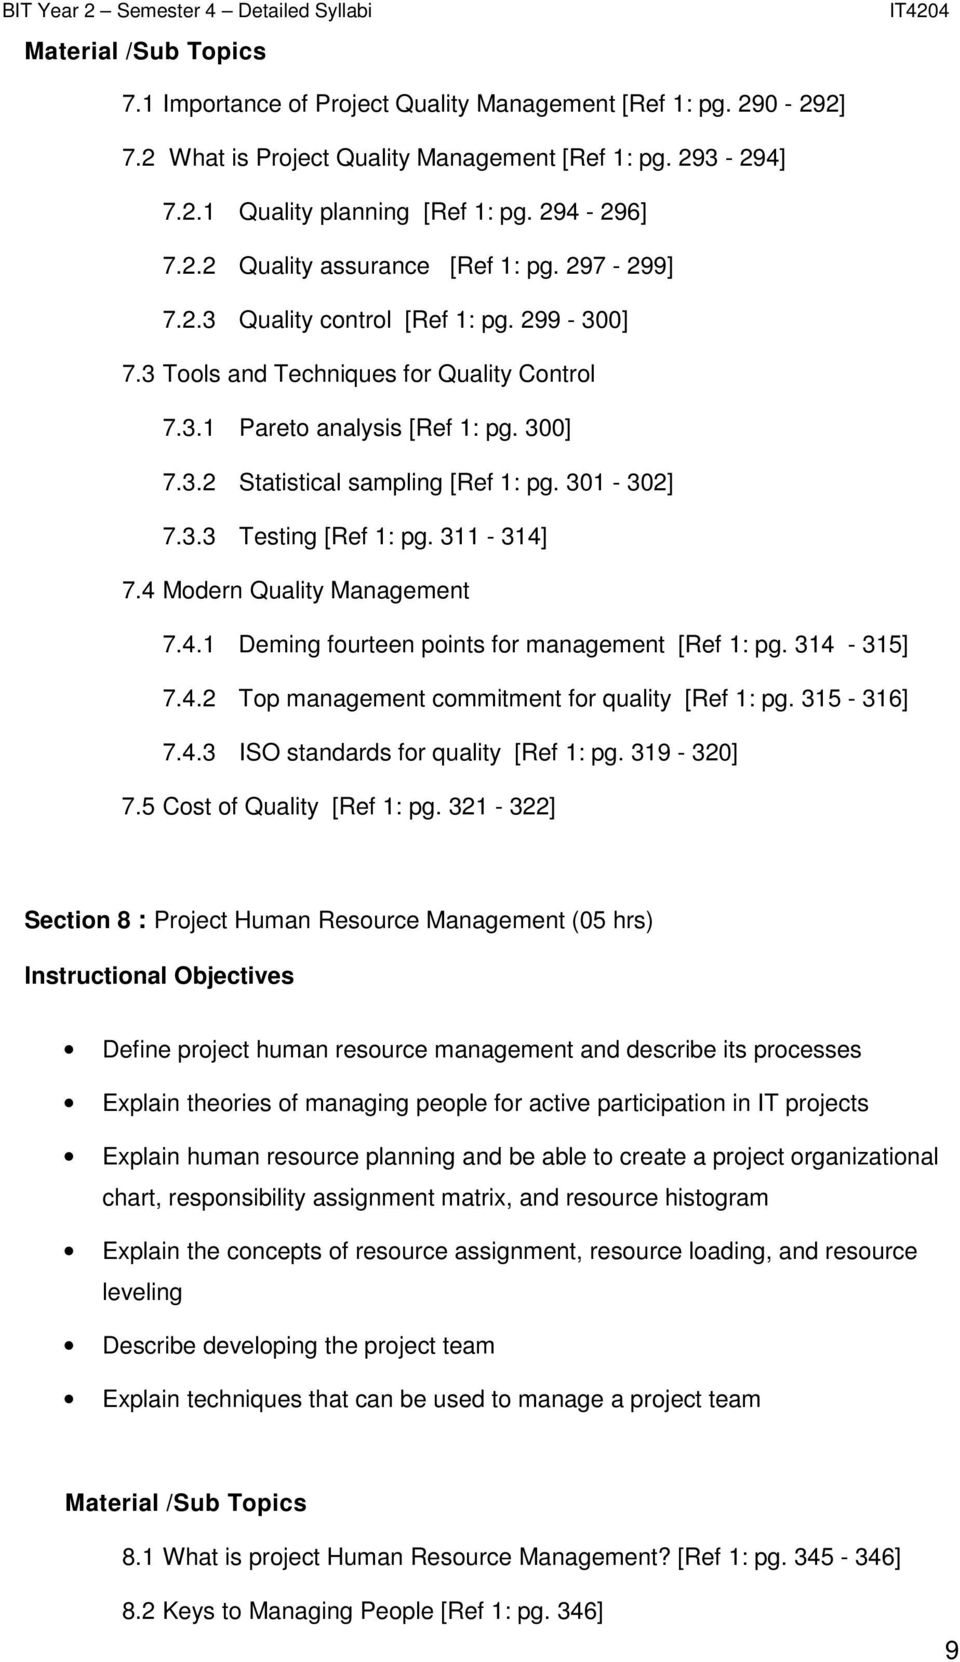 311-314] 7.4 Modern Quality Management 7.4.1 Deming fourteen points for management [Ref 1: pg. 314-315] 7.4.2 Top management commitment for quality [Ref 1: pg. 315-316] 7.4.3 ISO standards for quality [Ref 1: pg.